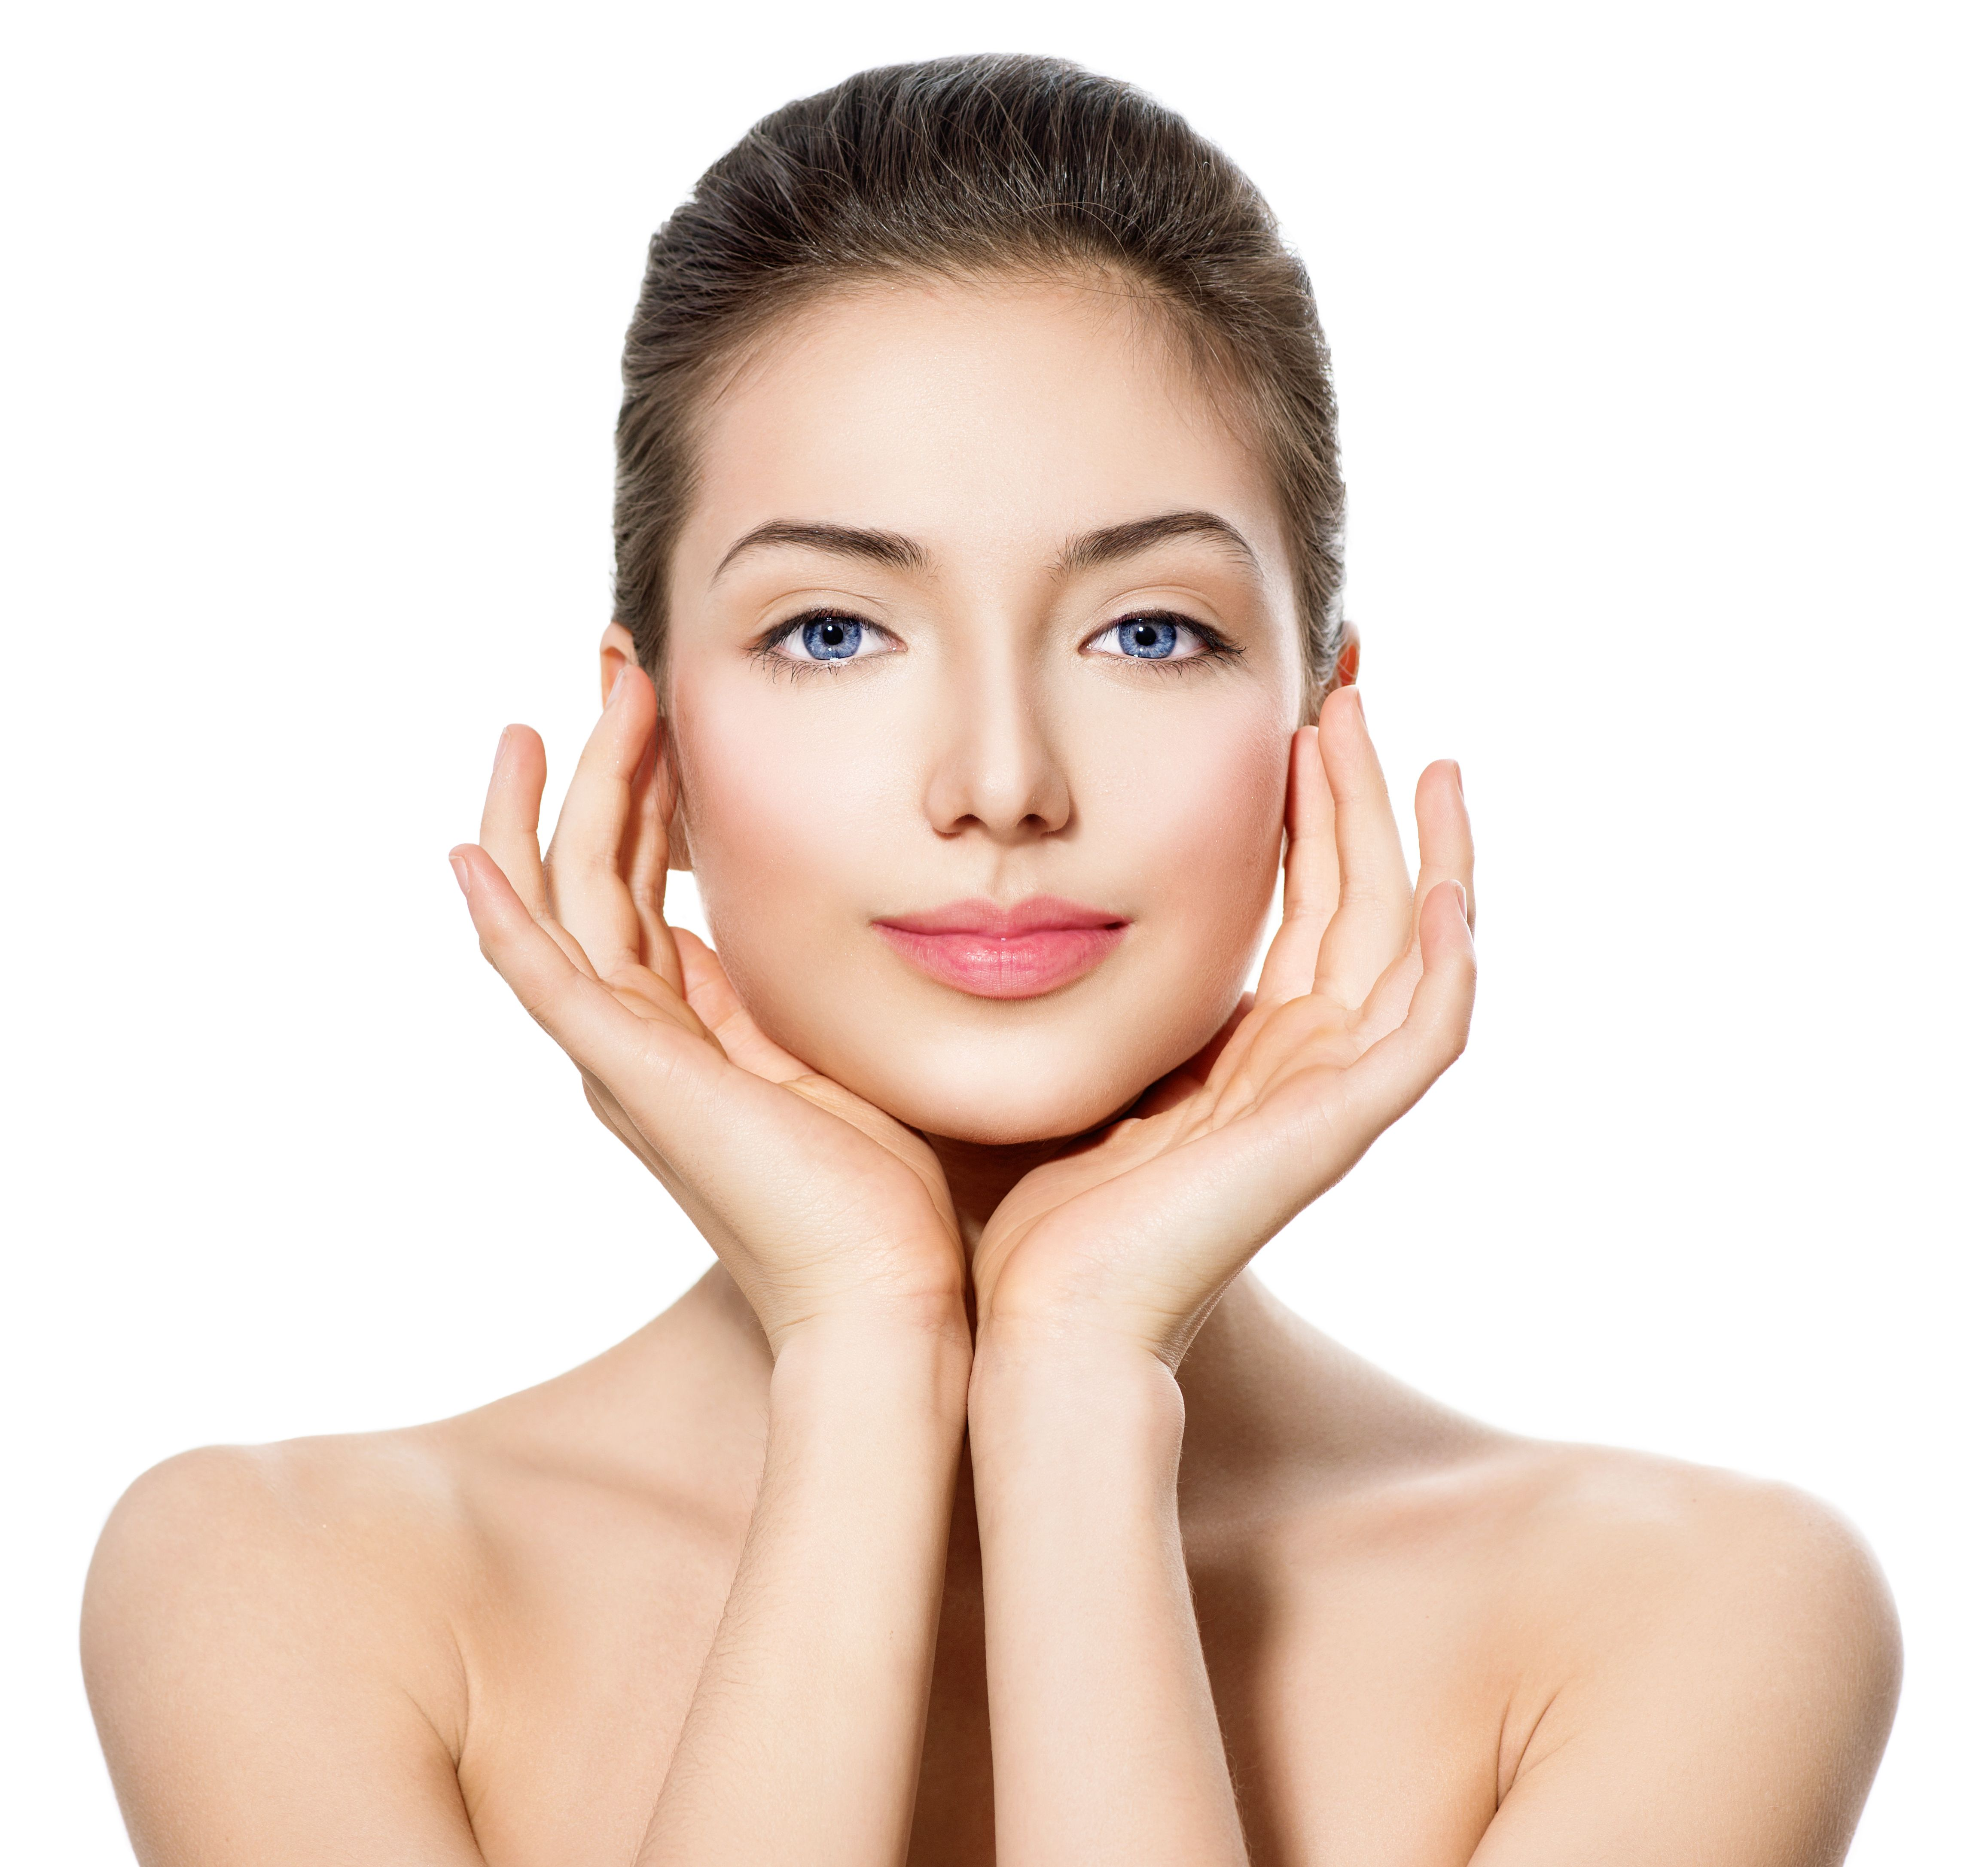 The Top Best Rated .IO Games List Skin care, Skincare